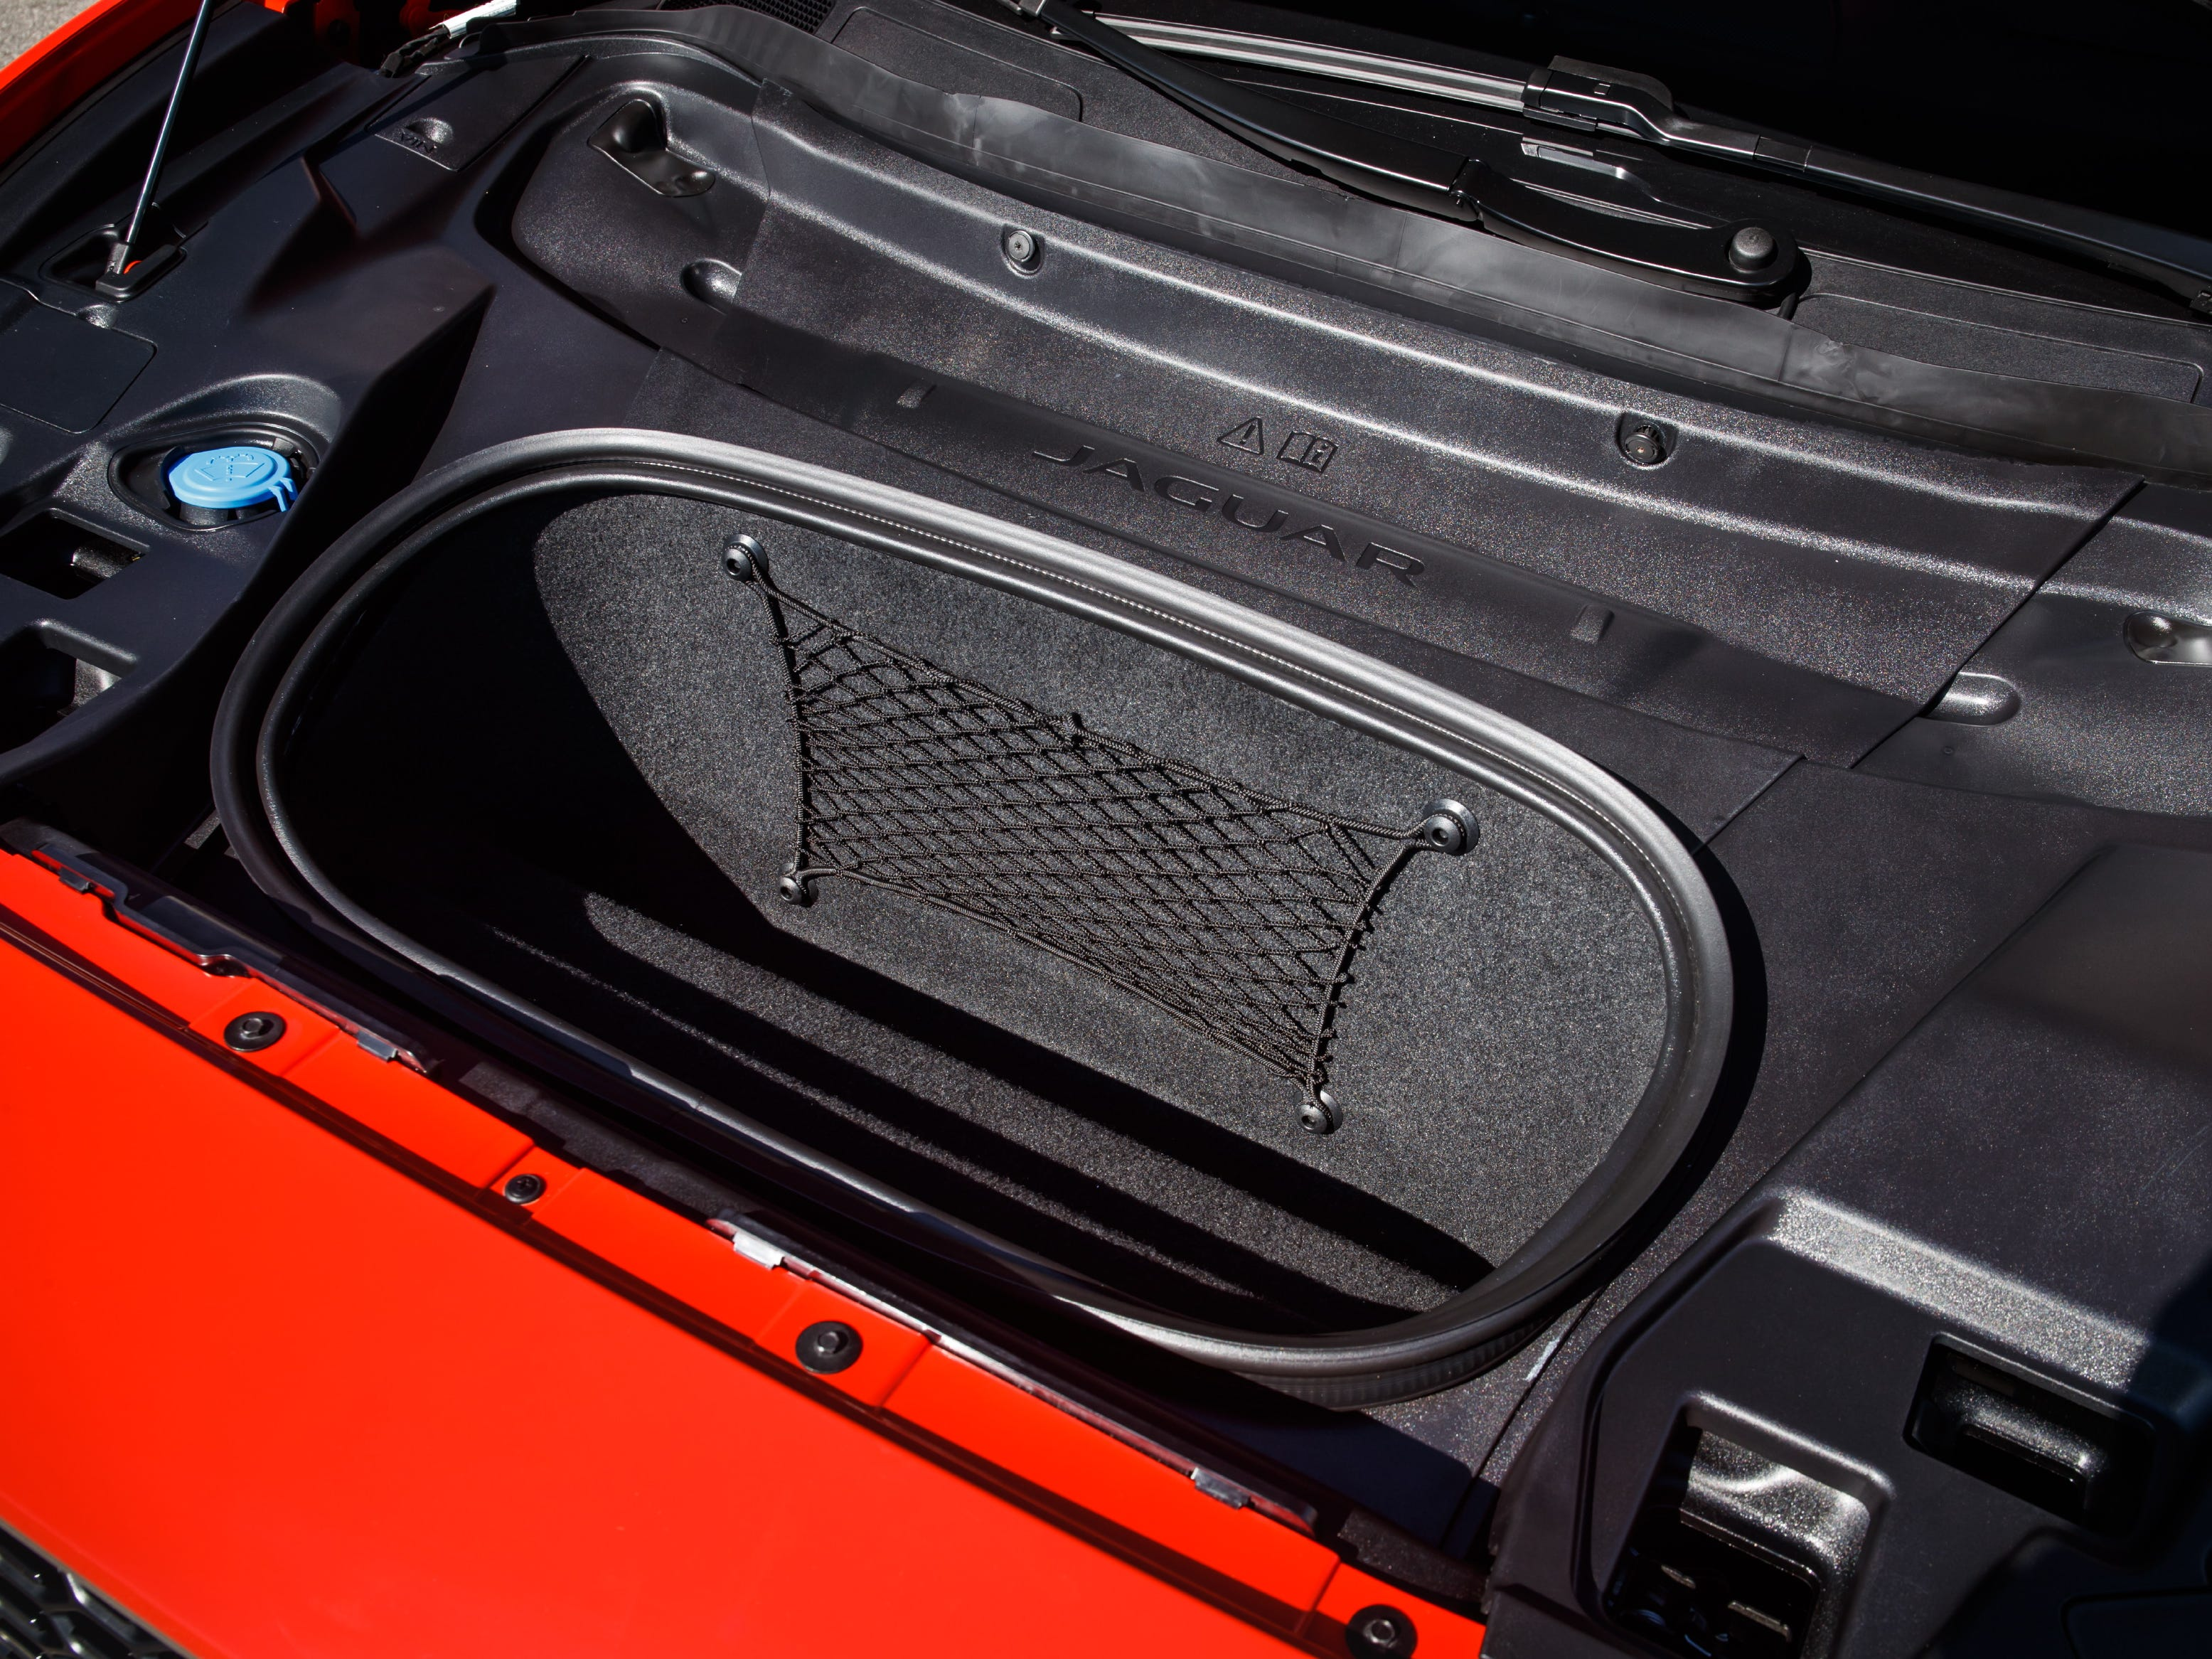 """The Jaguar I-PACE electric crossover has a space under the hood for storage, otherwise known as a """"frunk."""""""